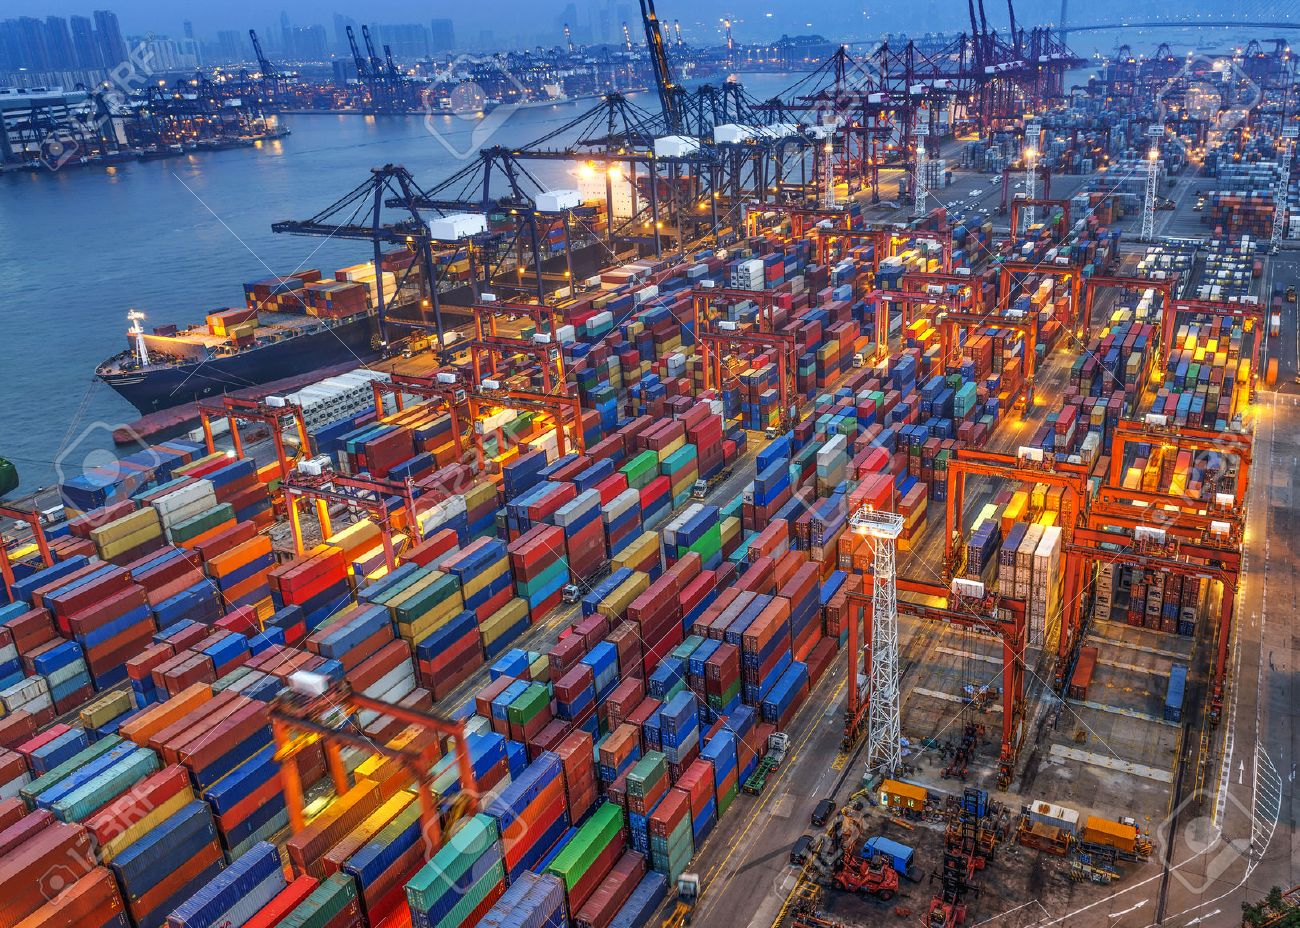 industrial port with containers - 44972932